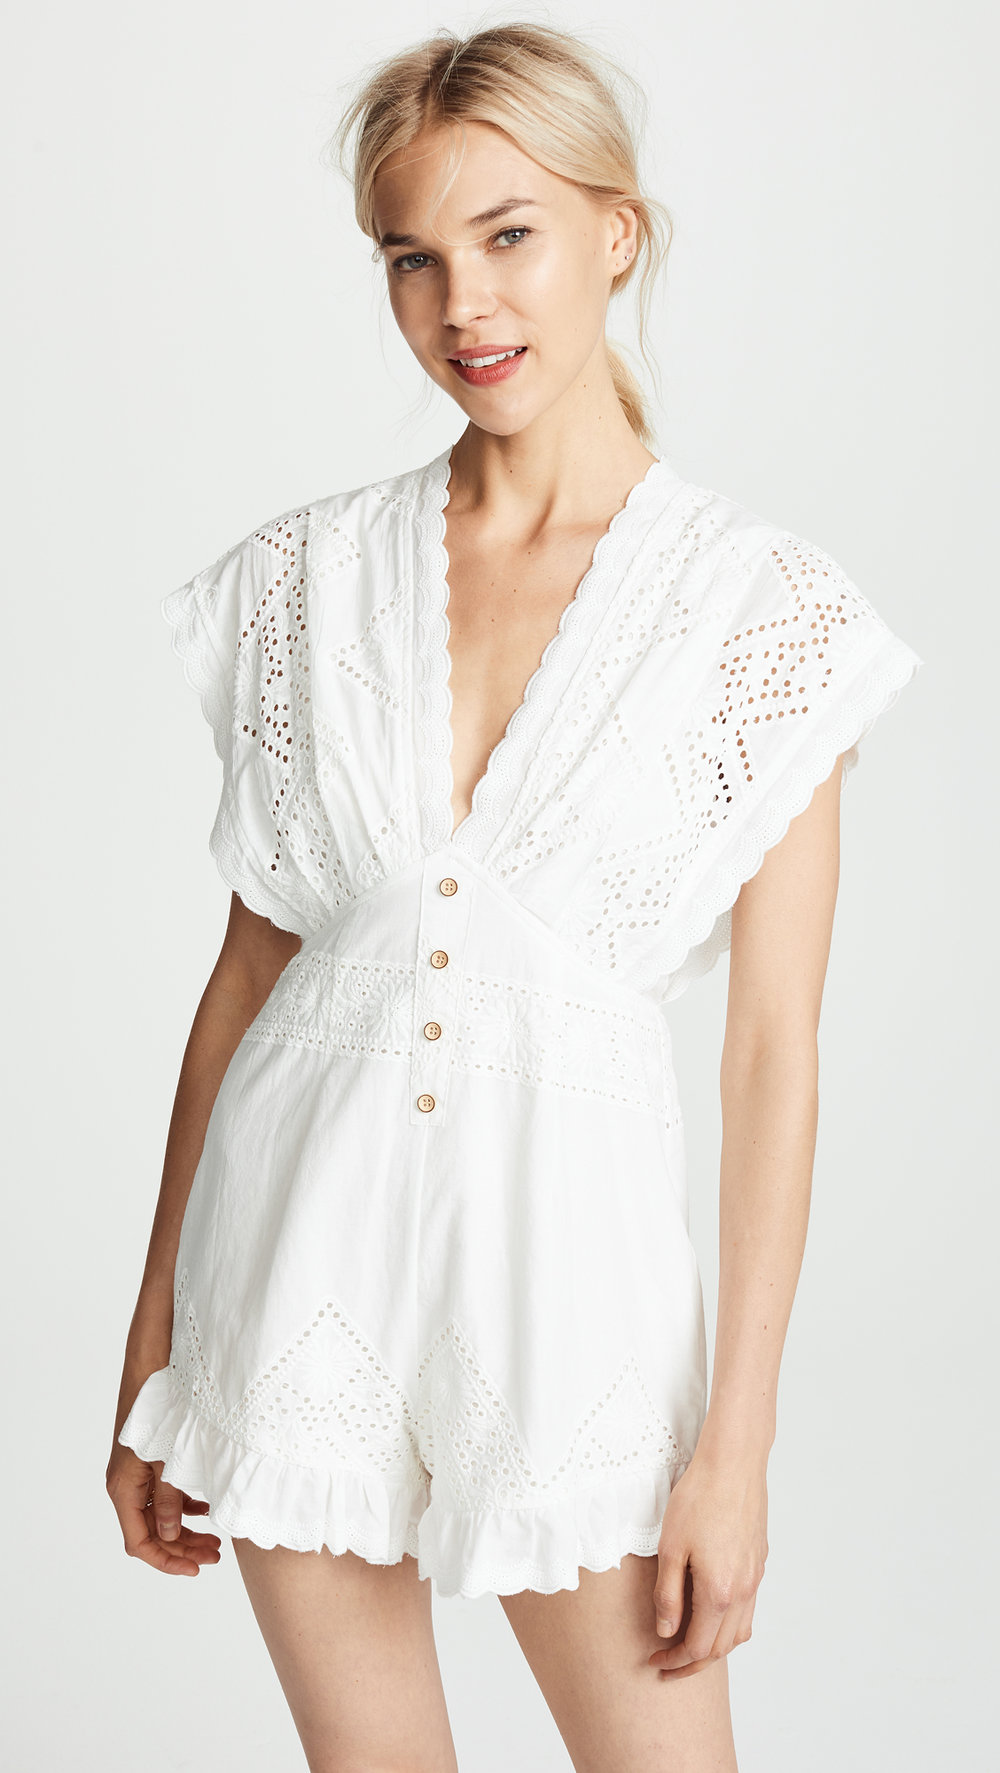 The Line UpEyelet Romper - Was: $132.00Now: $66.00